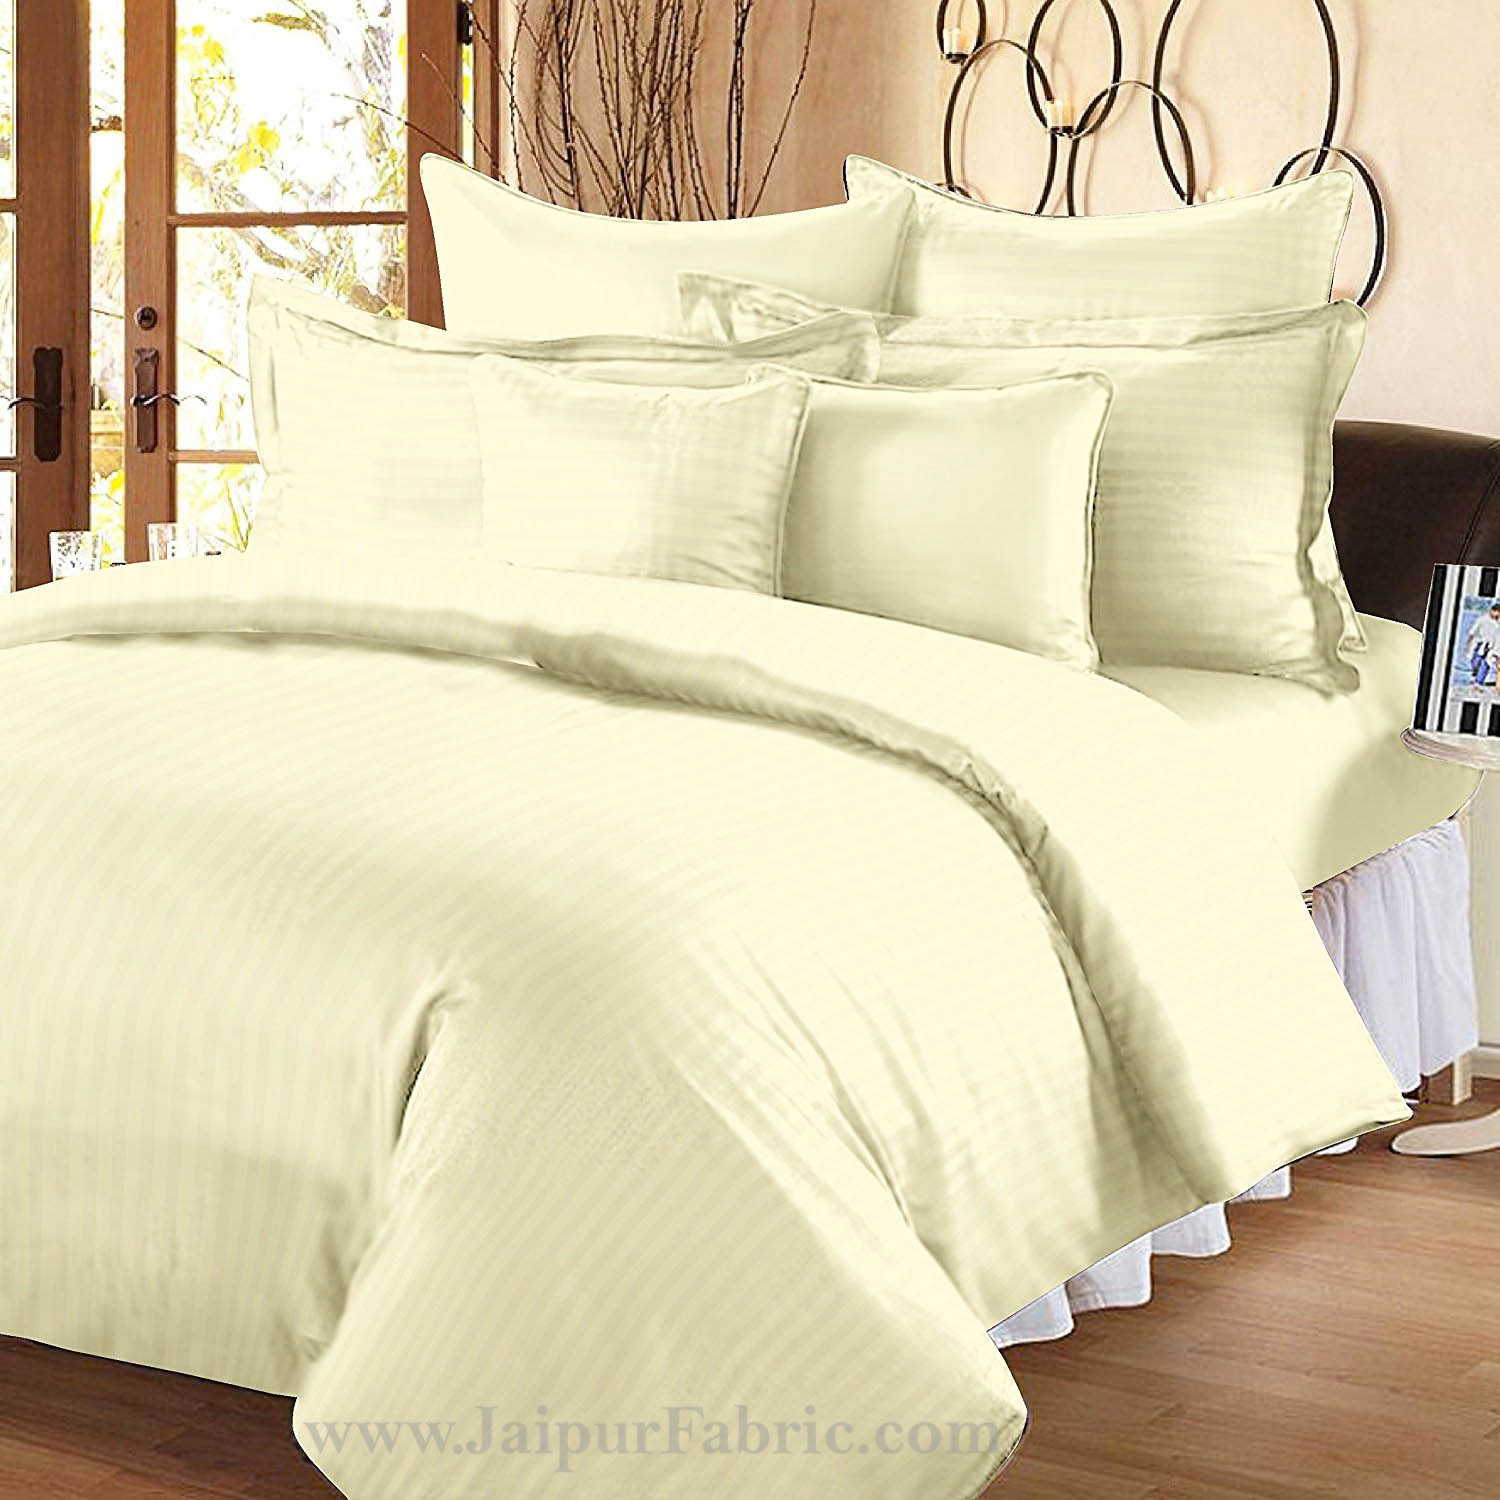 Awesome Off White Self Design 300 TC King Size Pure Cotton Satin Slumber Sheet for Double Bed with 2 pillow covers